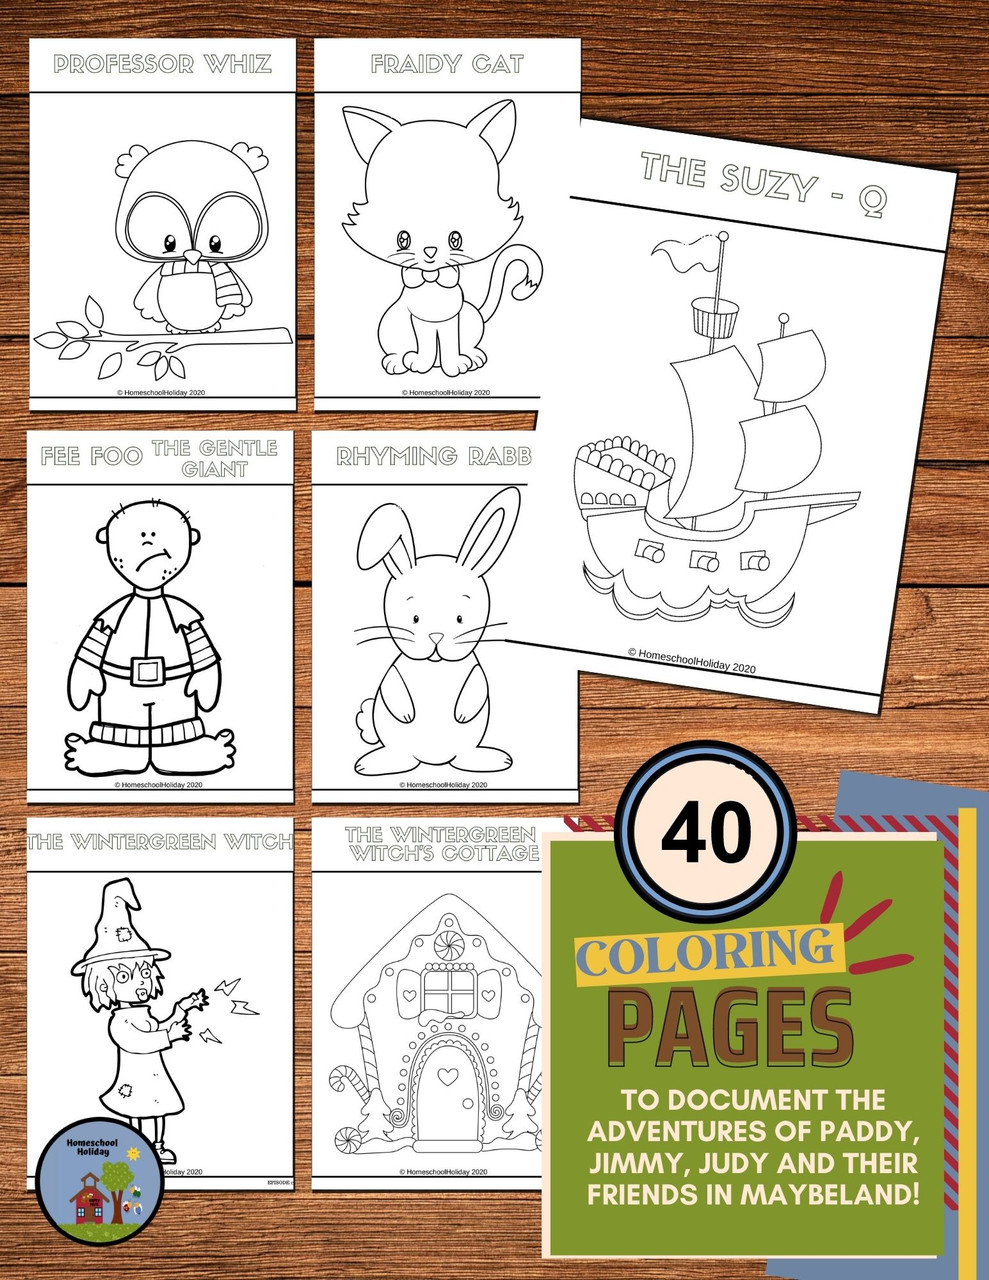 The Cinnamon Bear listening links and Coloring Book